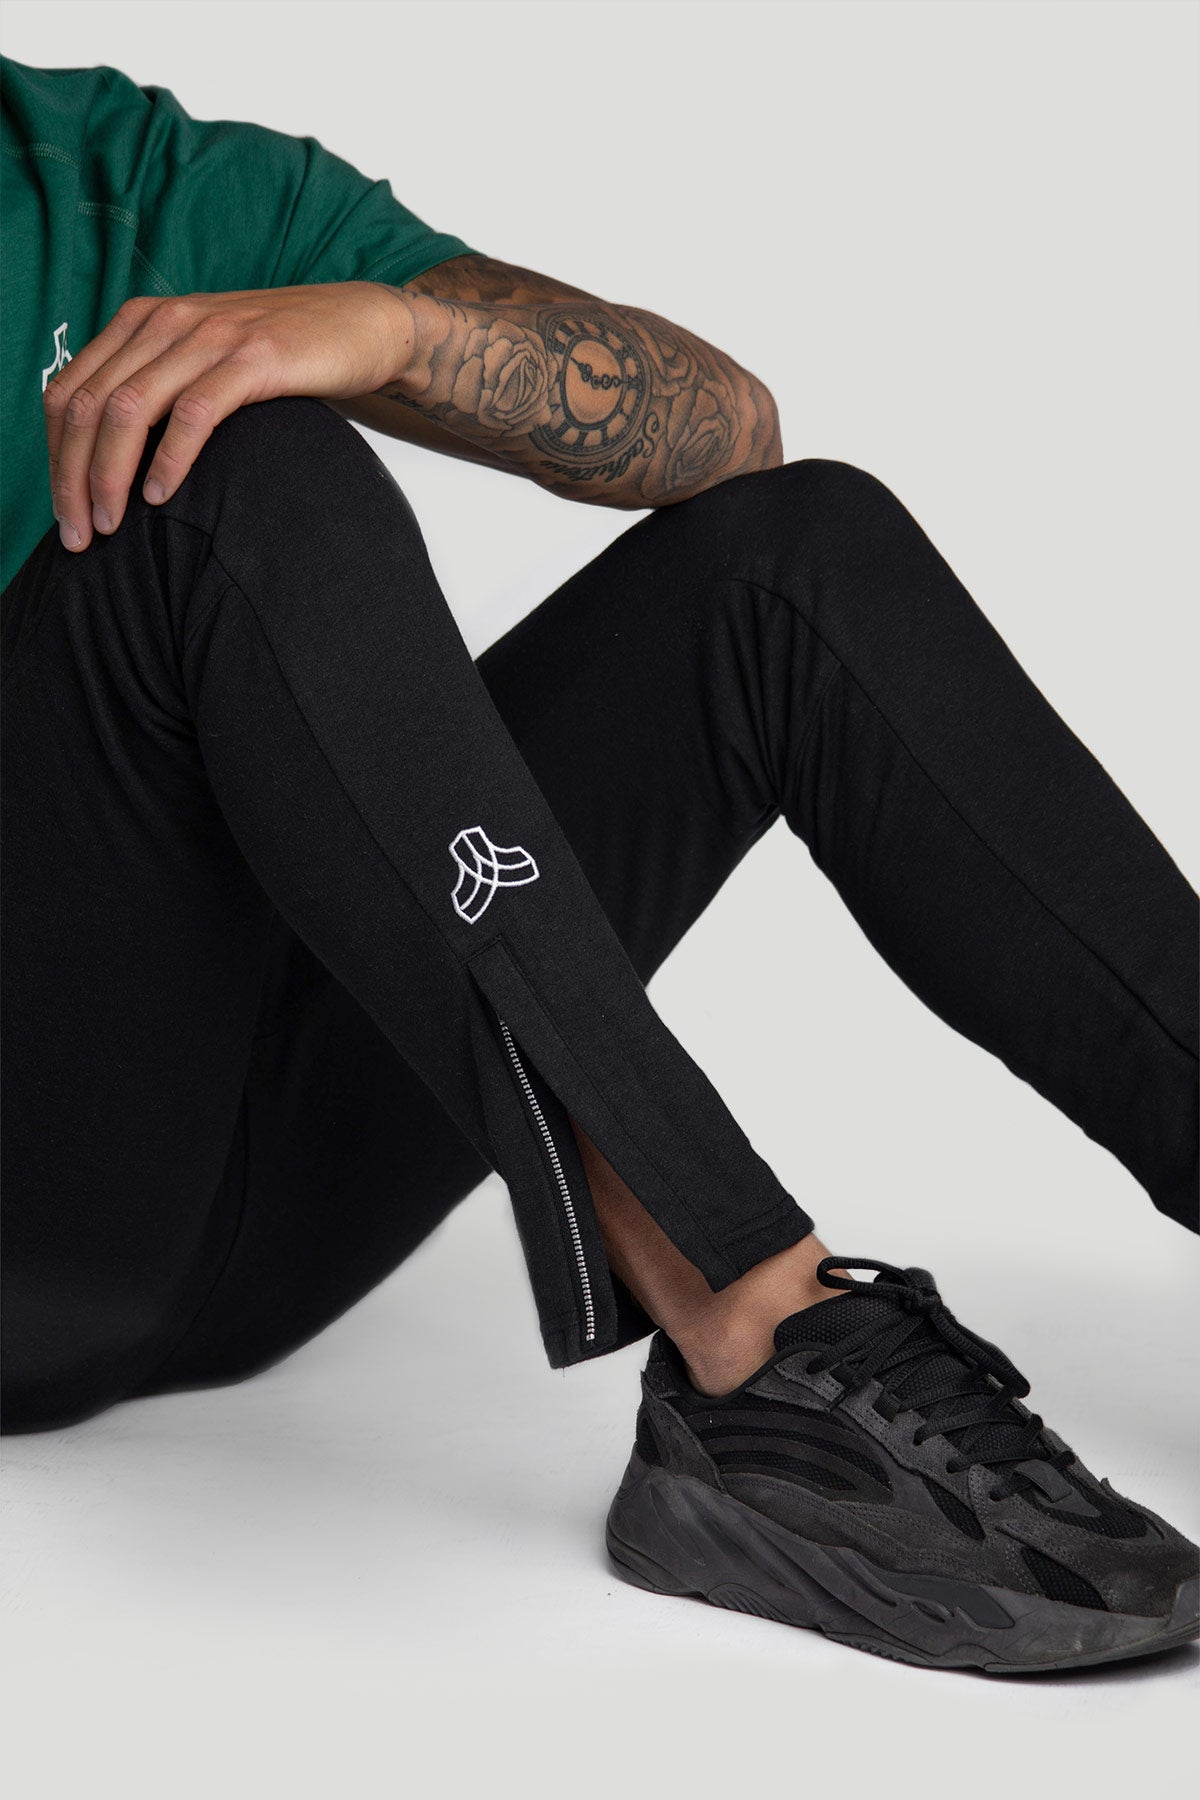 Iron Roots Hemp Performance Jogger - Black